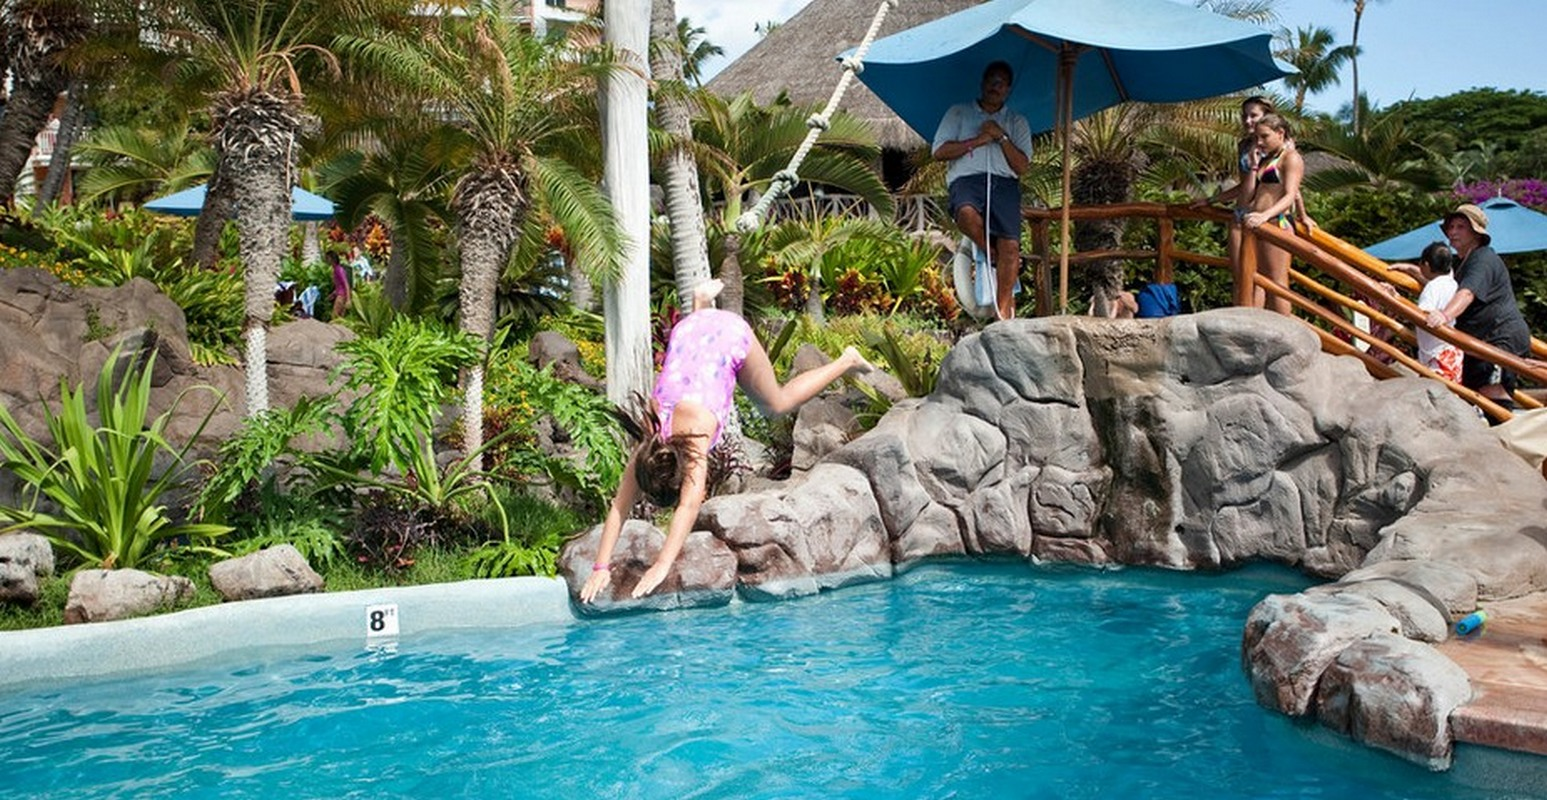 7 Best Family Friendly Hotel Pools That Are Totally Cool